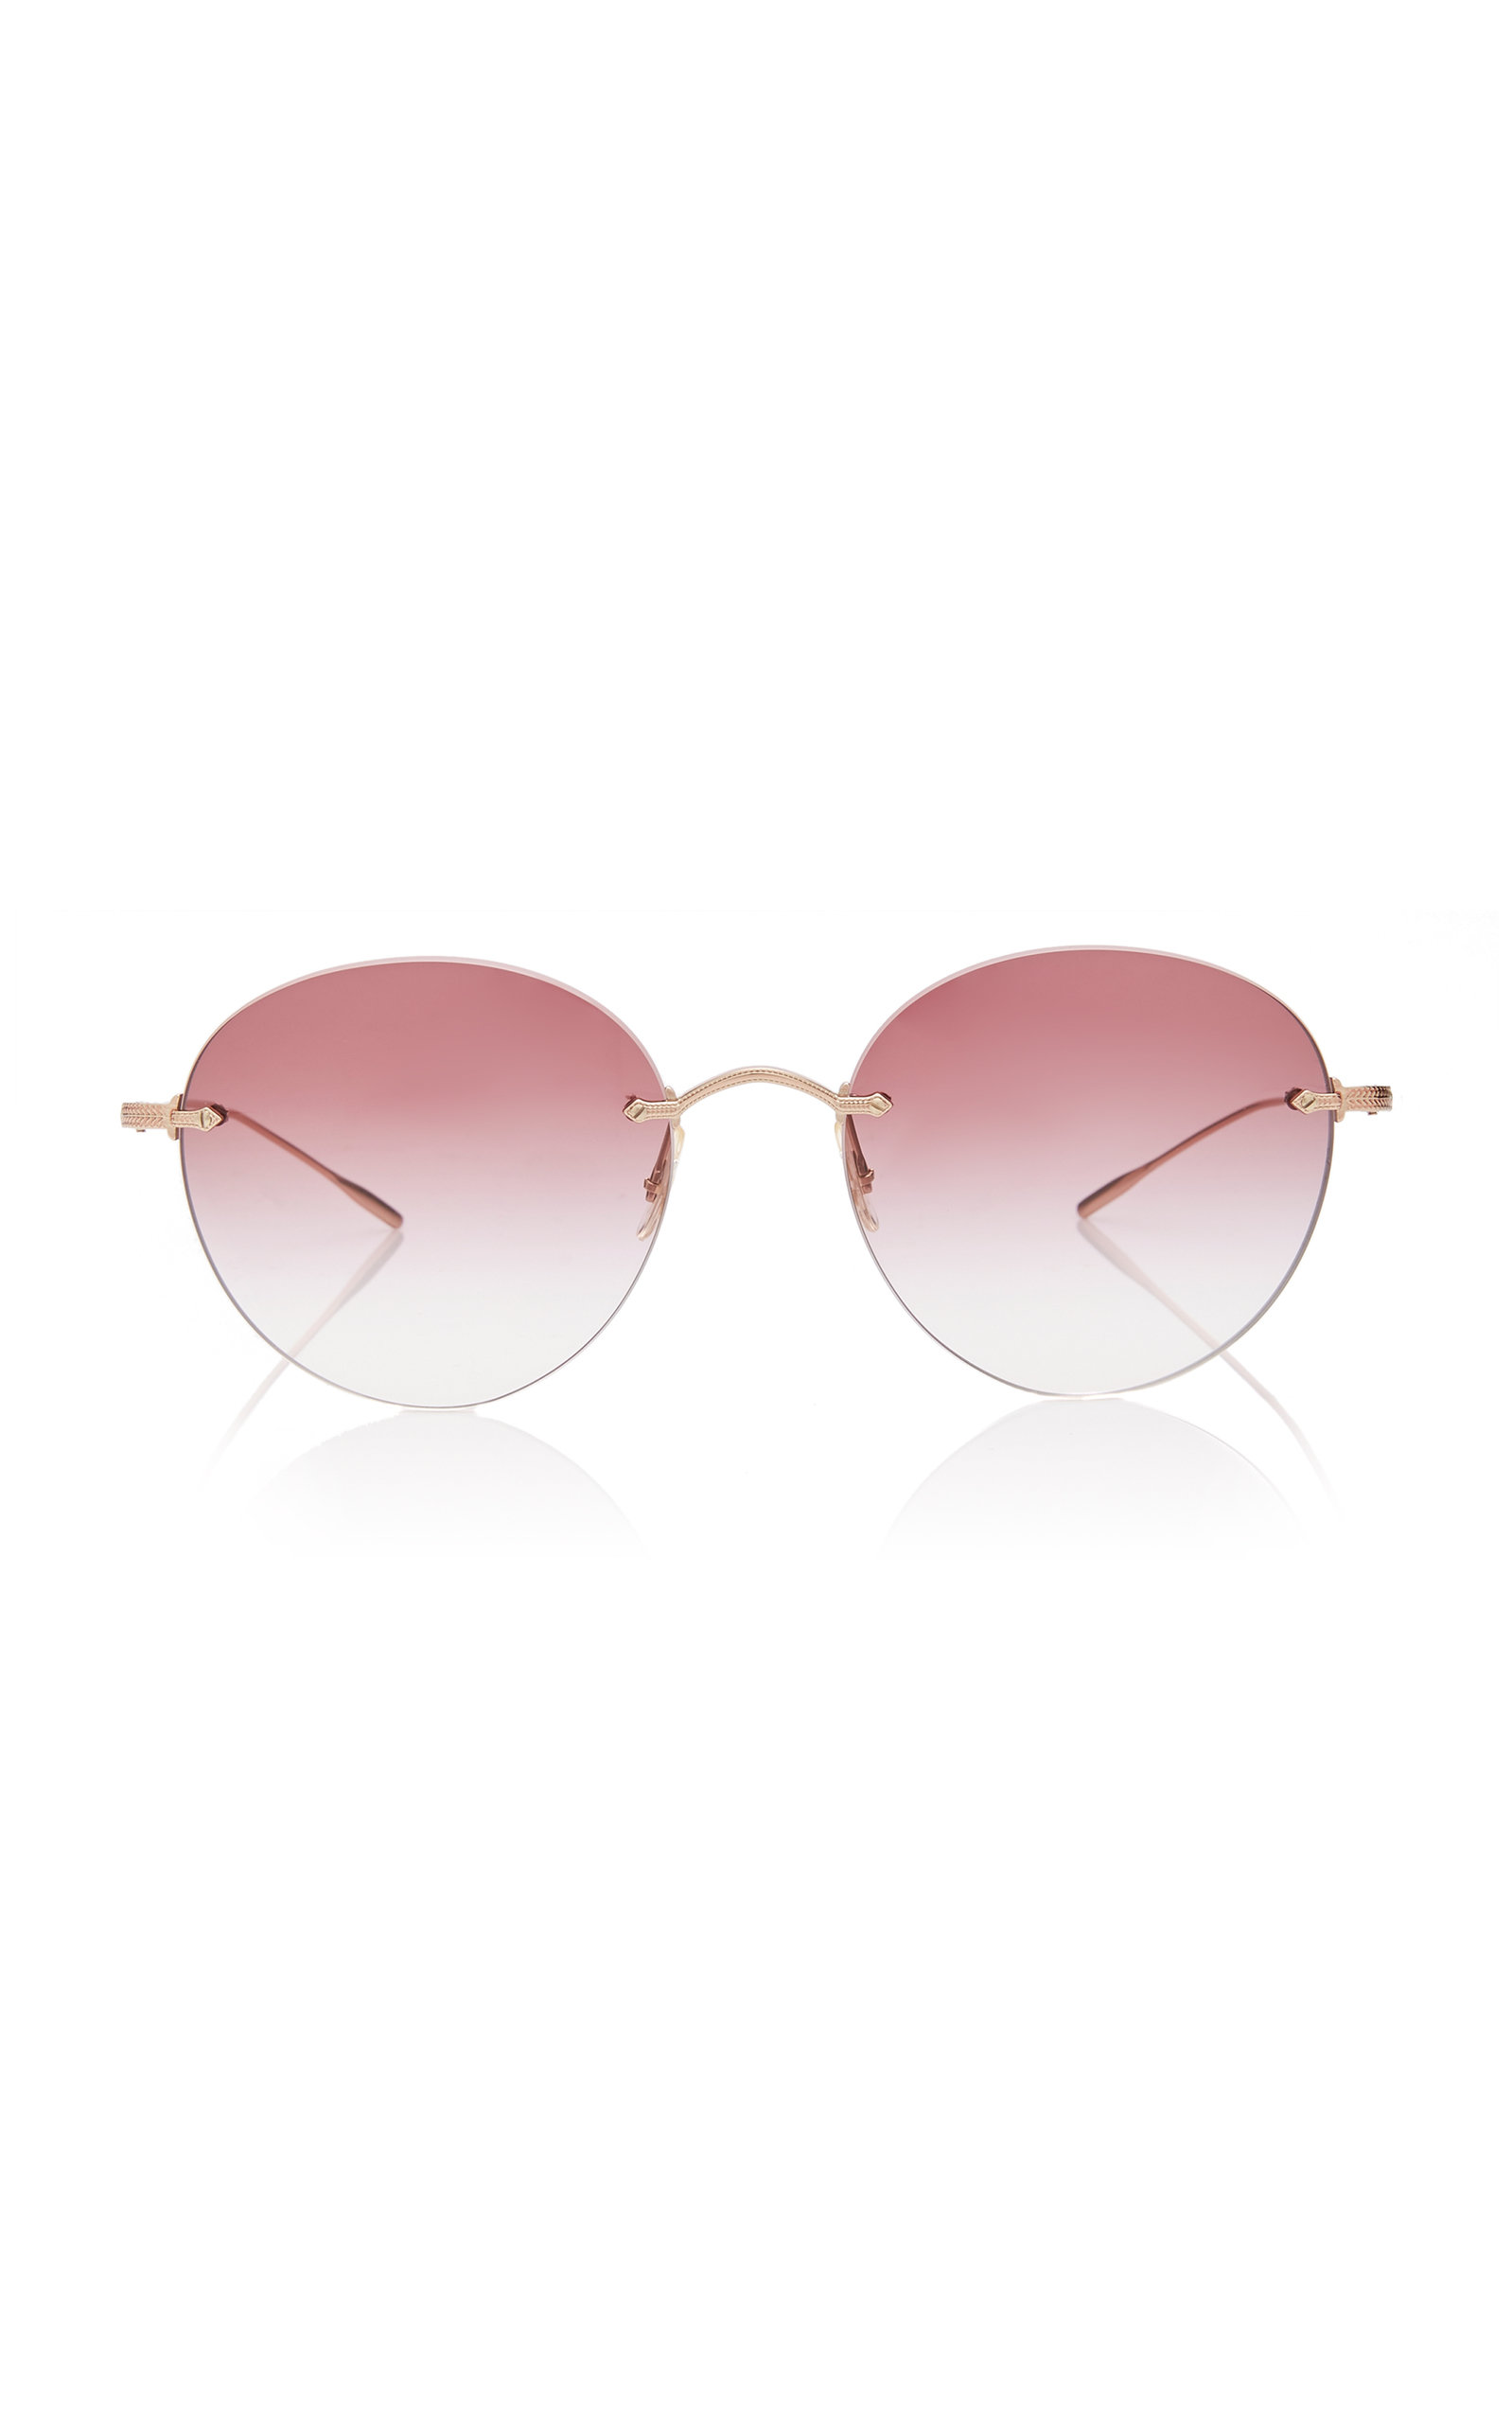 Oliver Peoples  MARLIEN ROUND-FRAME METAL SUNGLASSES